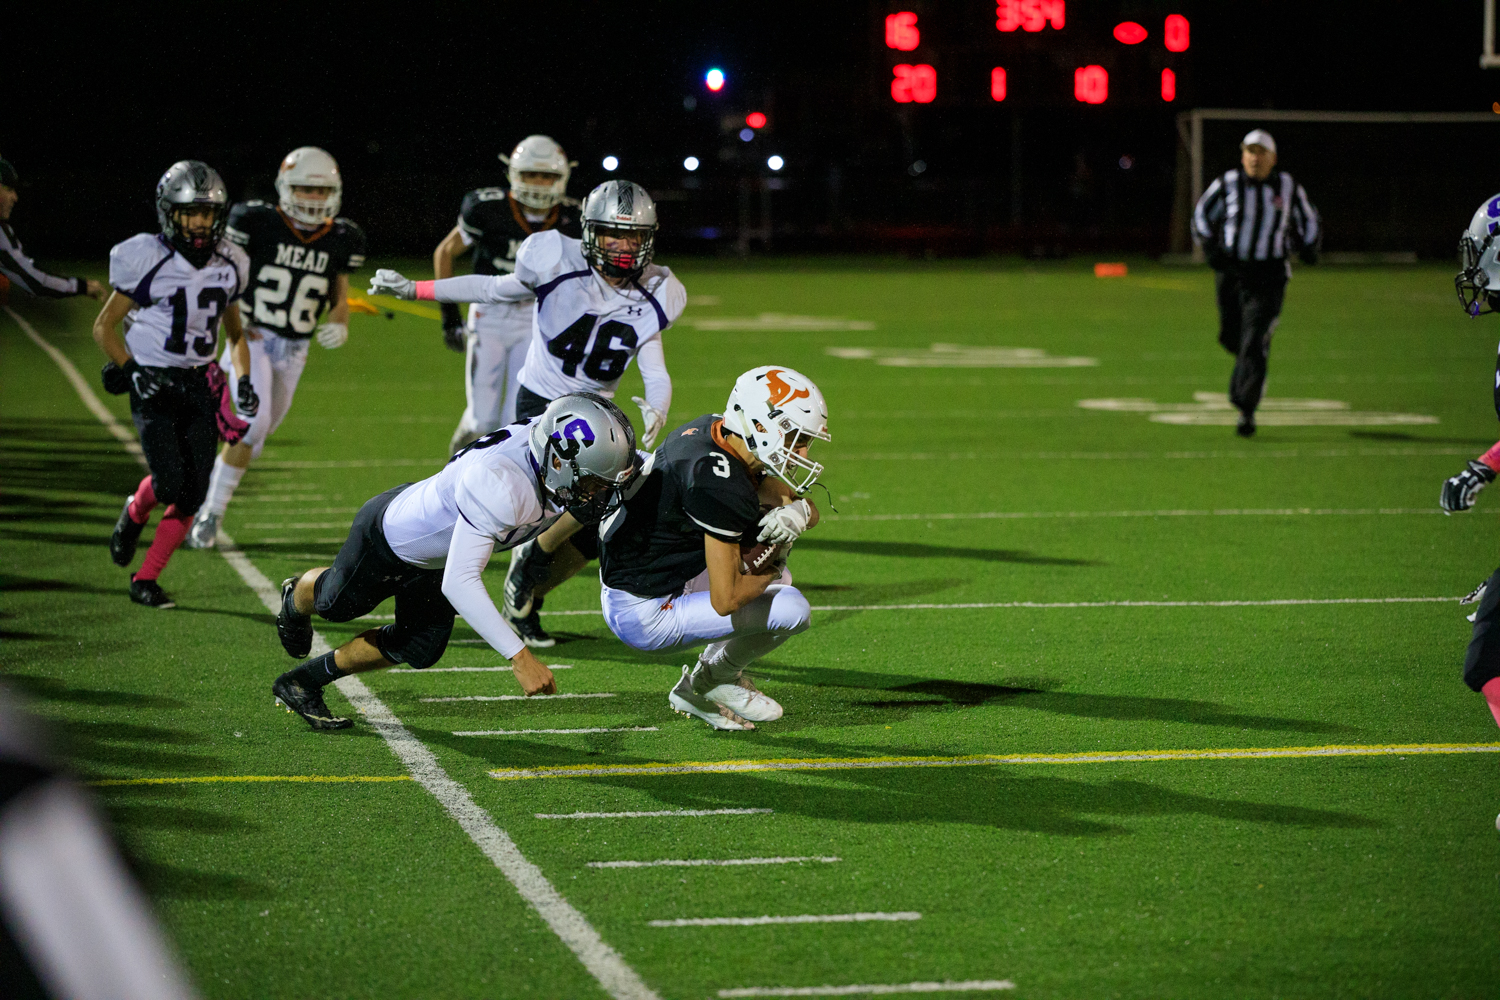 Skyview+punts+to+Mead+after+the+safety.+%233+Brayden+Keys%2C+Sophomore%2C+returns+the+ball+back+to+Mead%27s+49+yard+line.